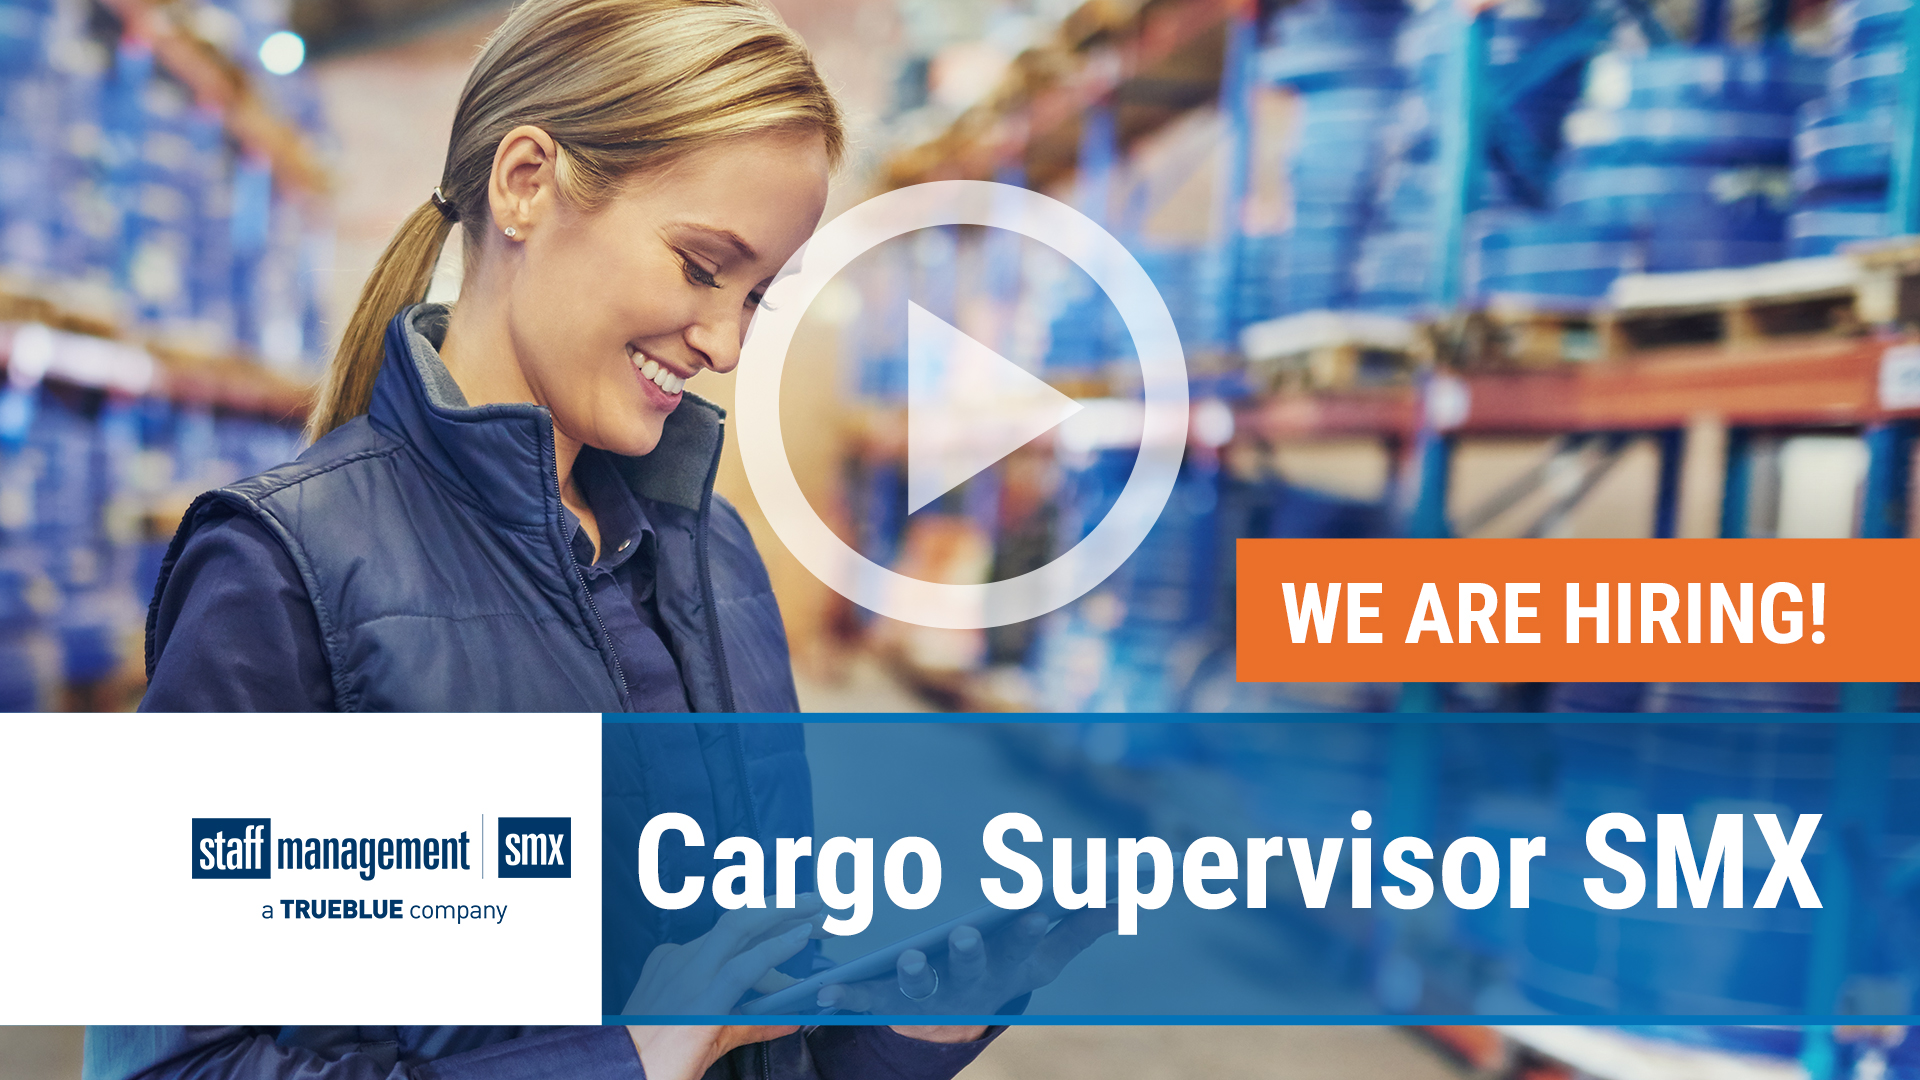 Watch our careers video for available job opening Cargo Supervisor SMX in Nationwide, USA